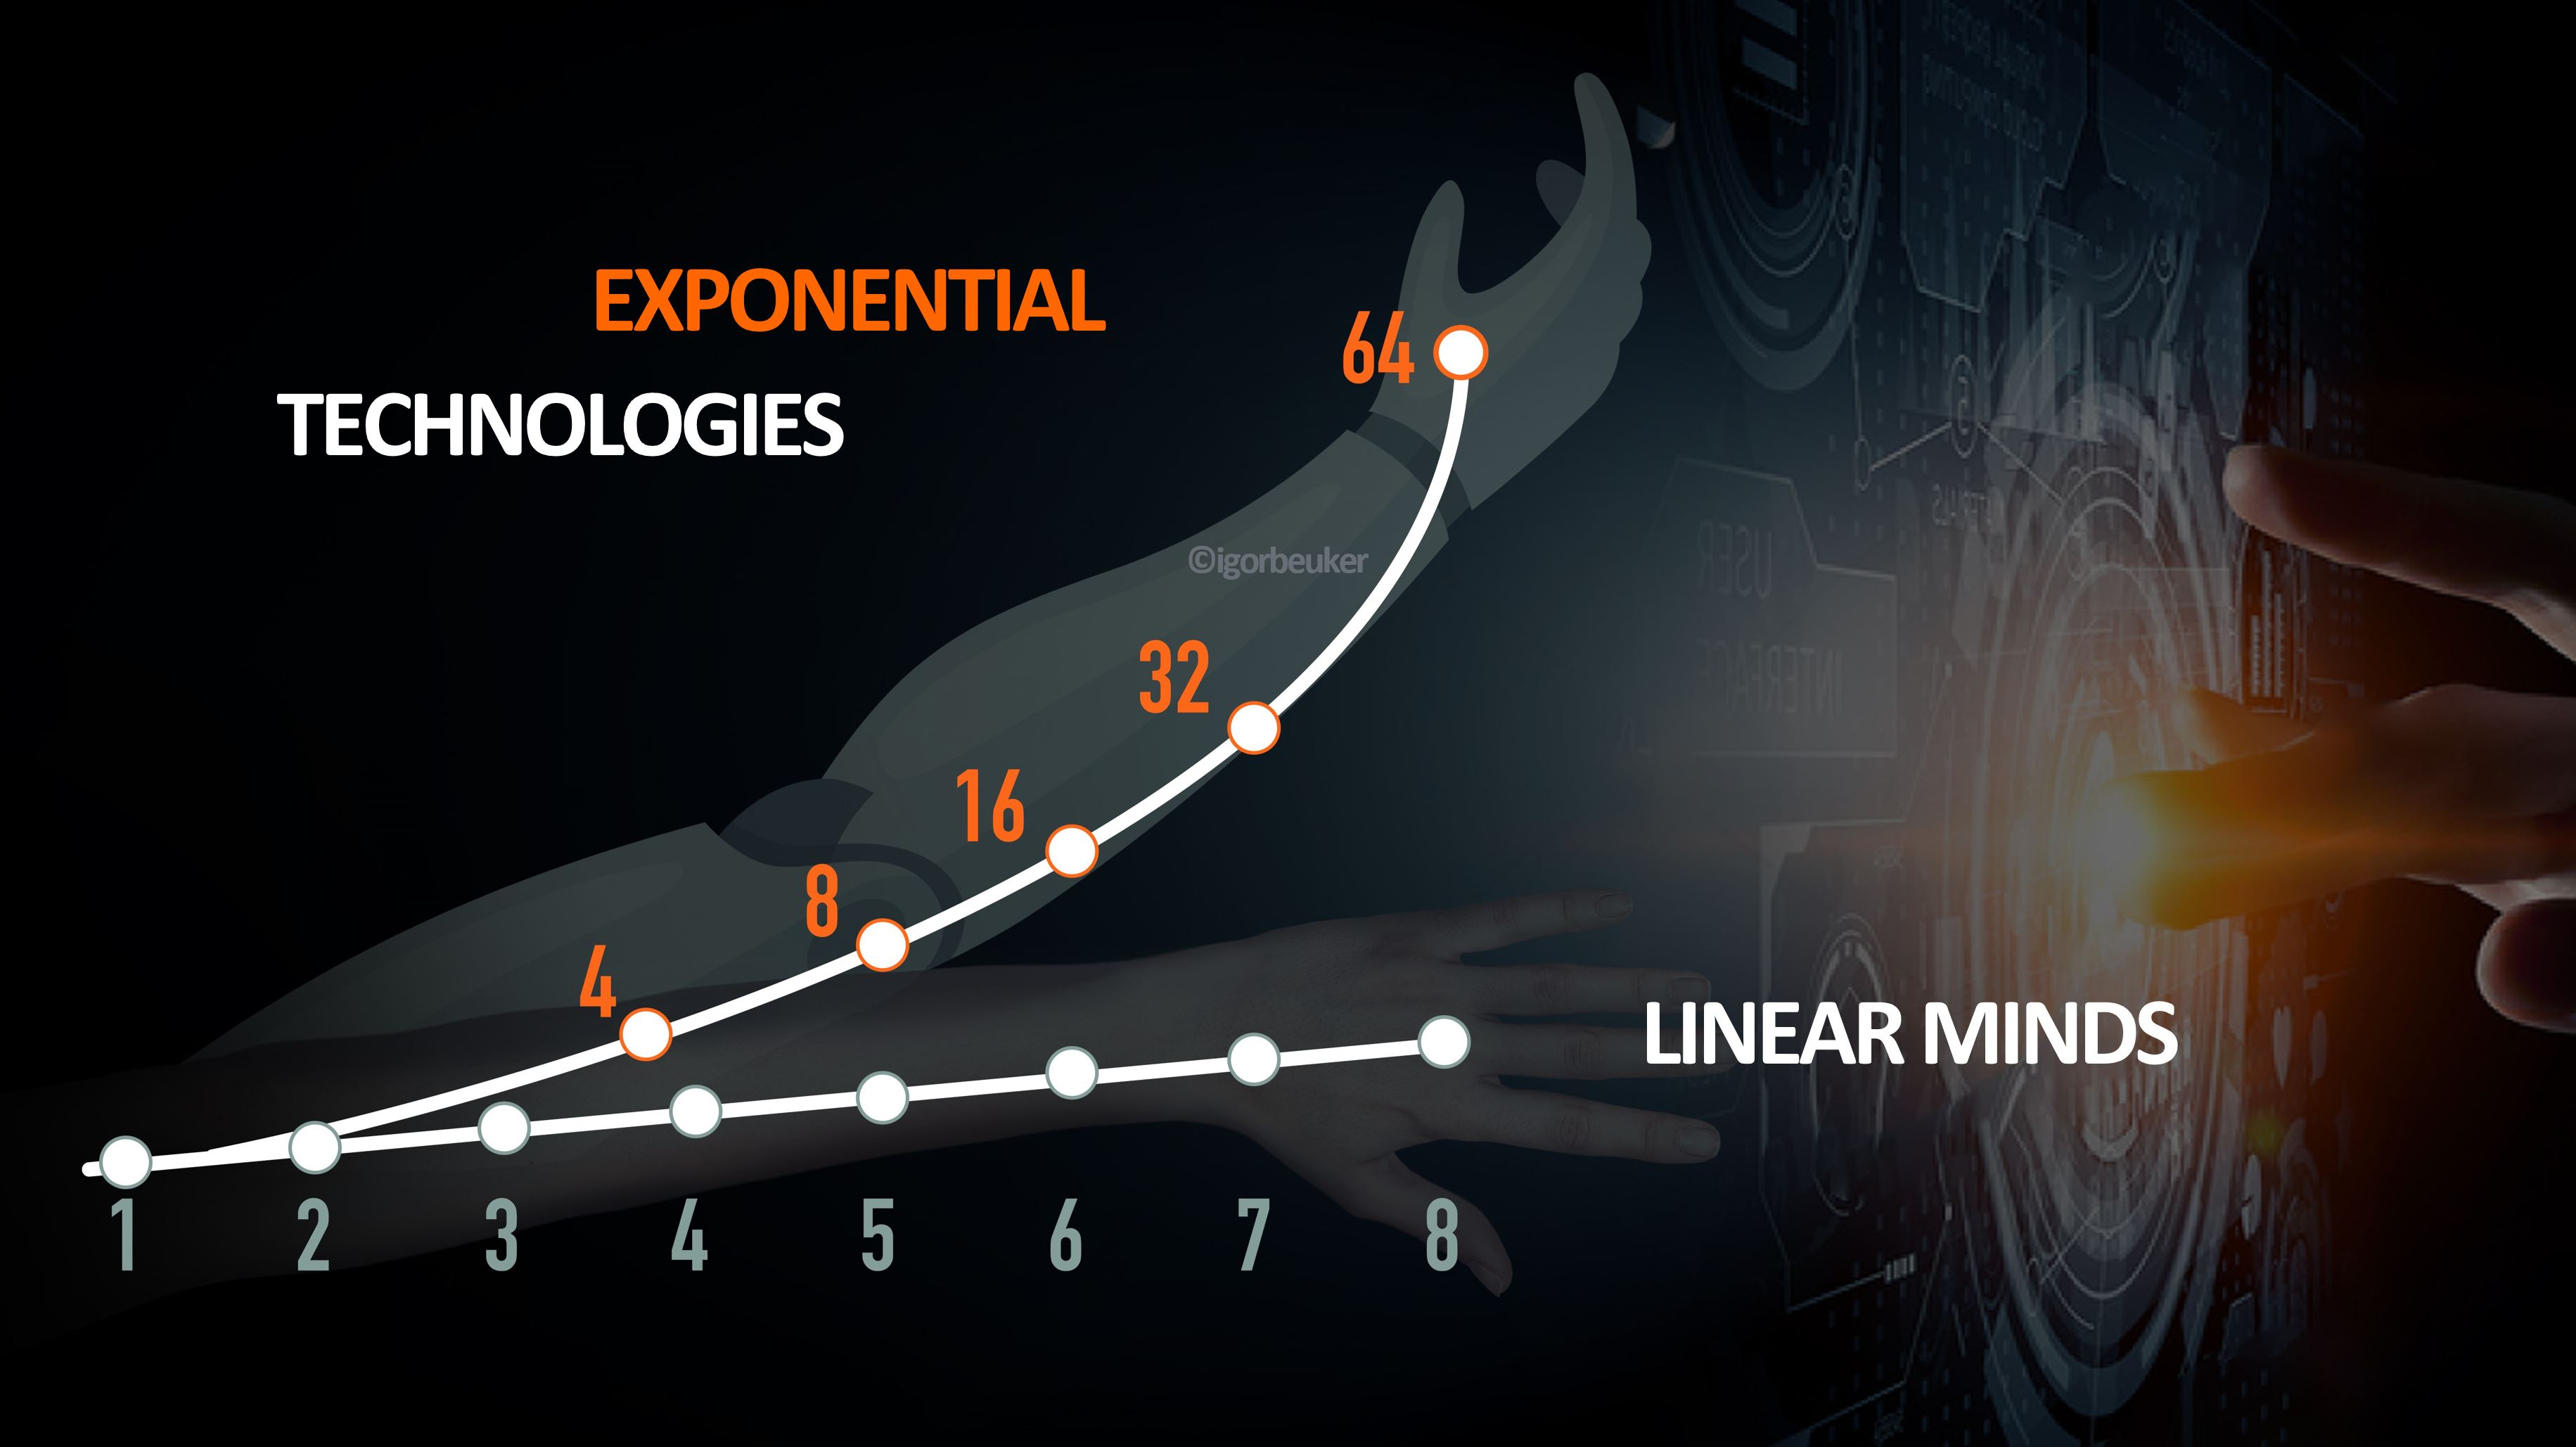 Exponential_Technologies_vs_our_linear_minds_Keynote_speaker_Igor_Beuker